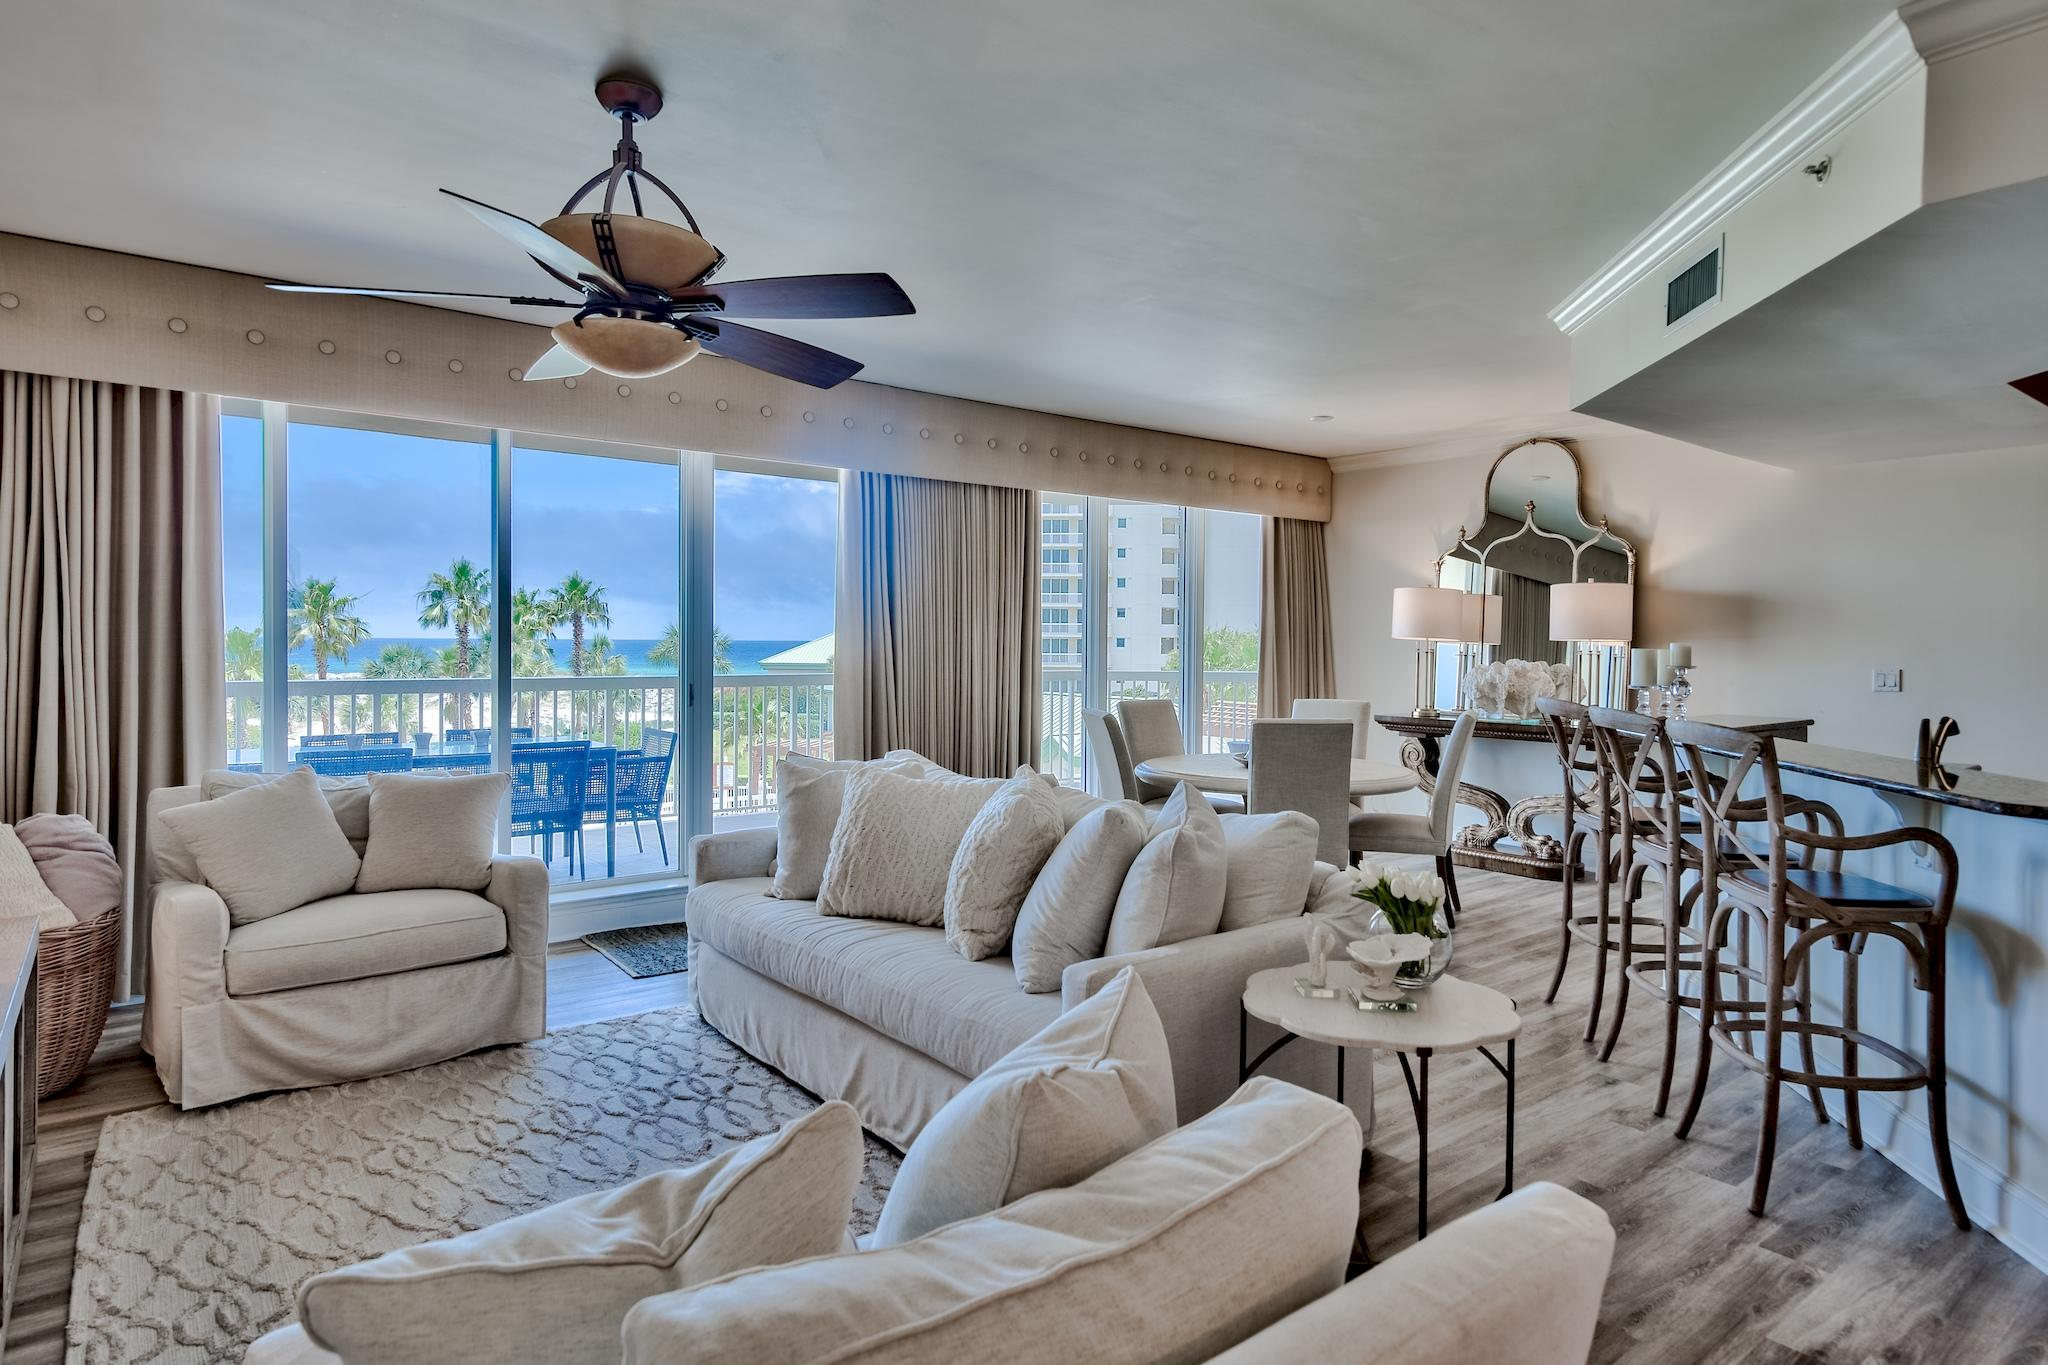 This exquisite unit is located in the exclusive non-rental St. Barths building inside the gates of S